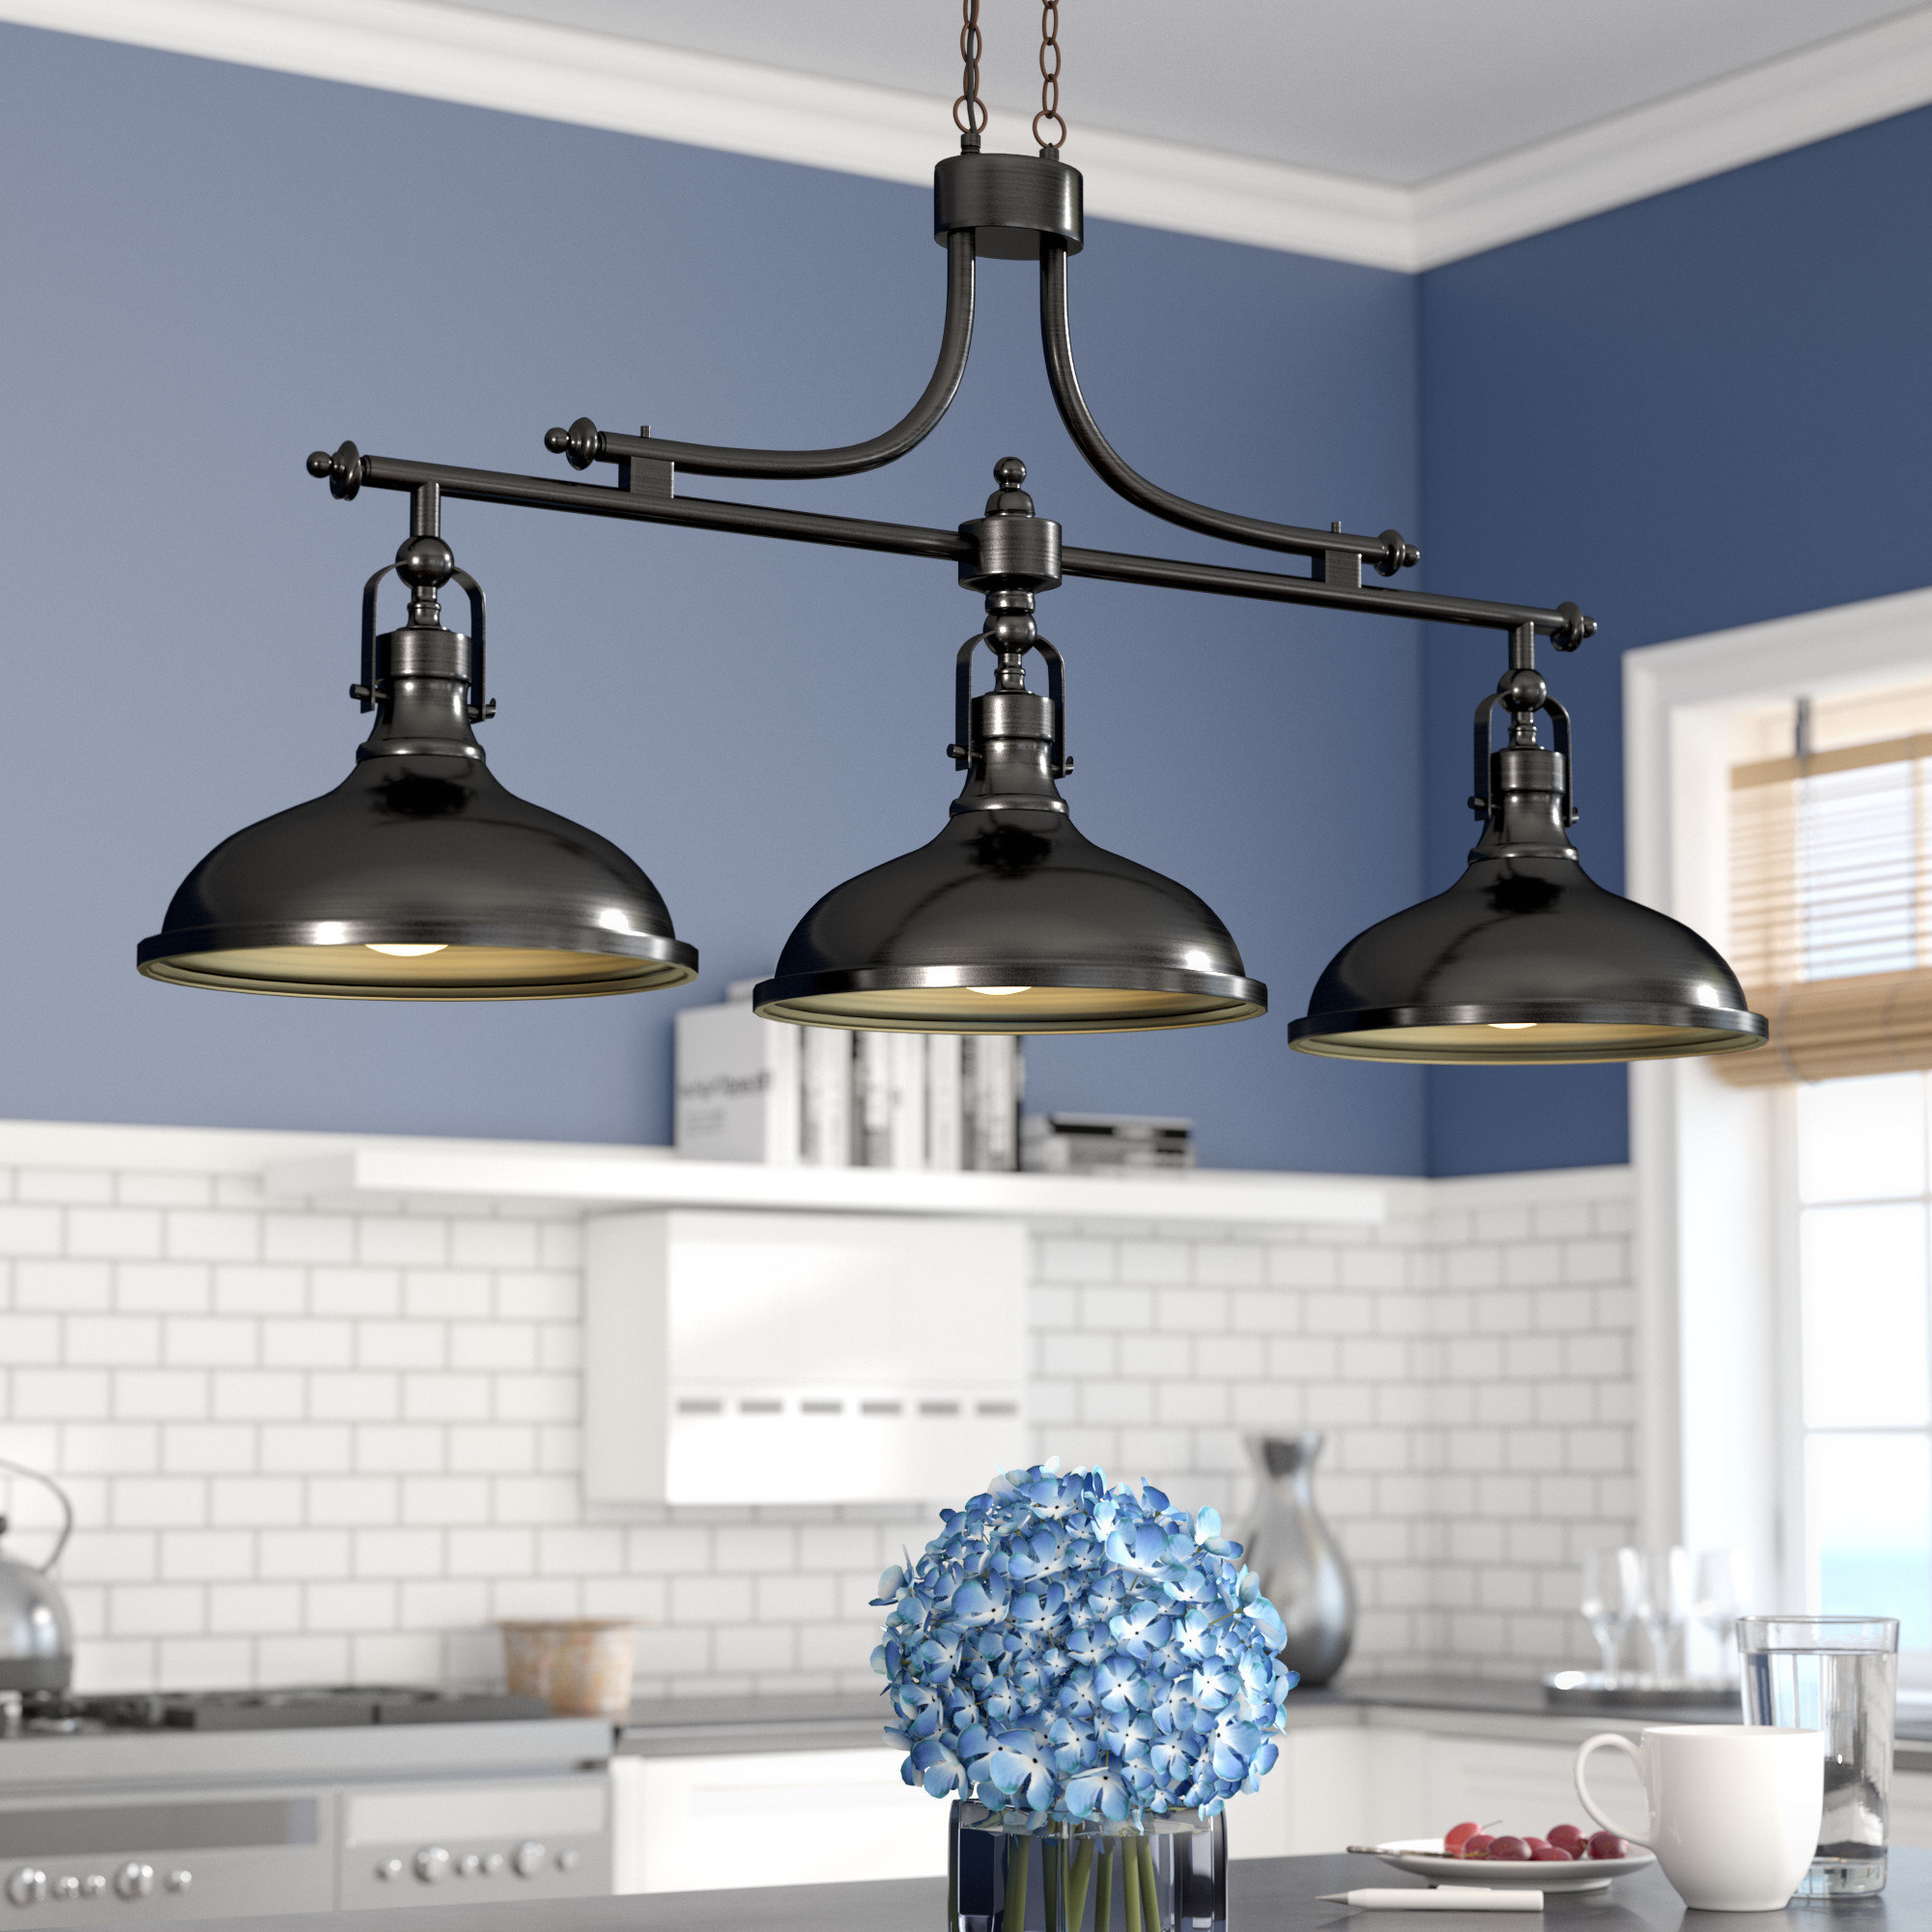 Ariel 3 Light Kitchen Island Dome Pendants Intended For 2020 3 Light Kitchen Island Pendant Lighting You'll Love In  (View 7 of 20)